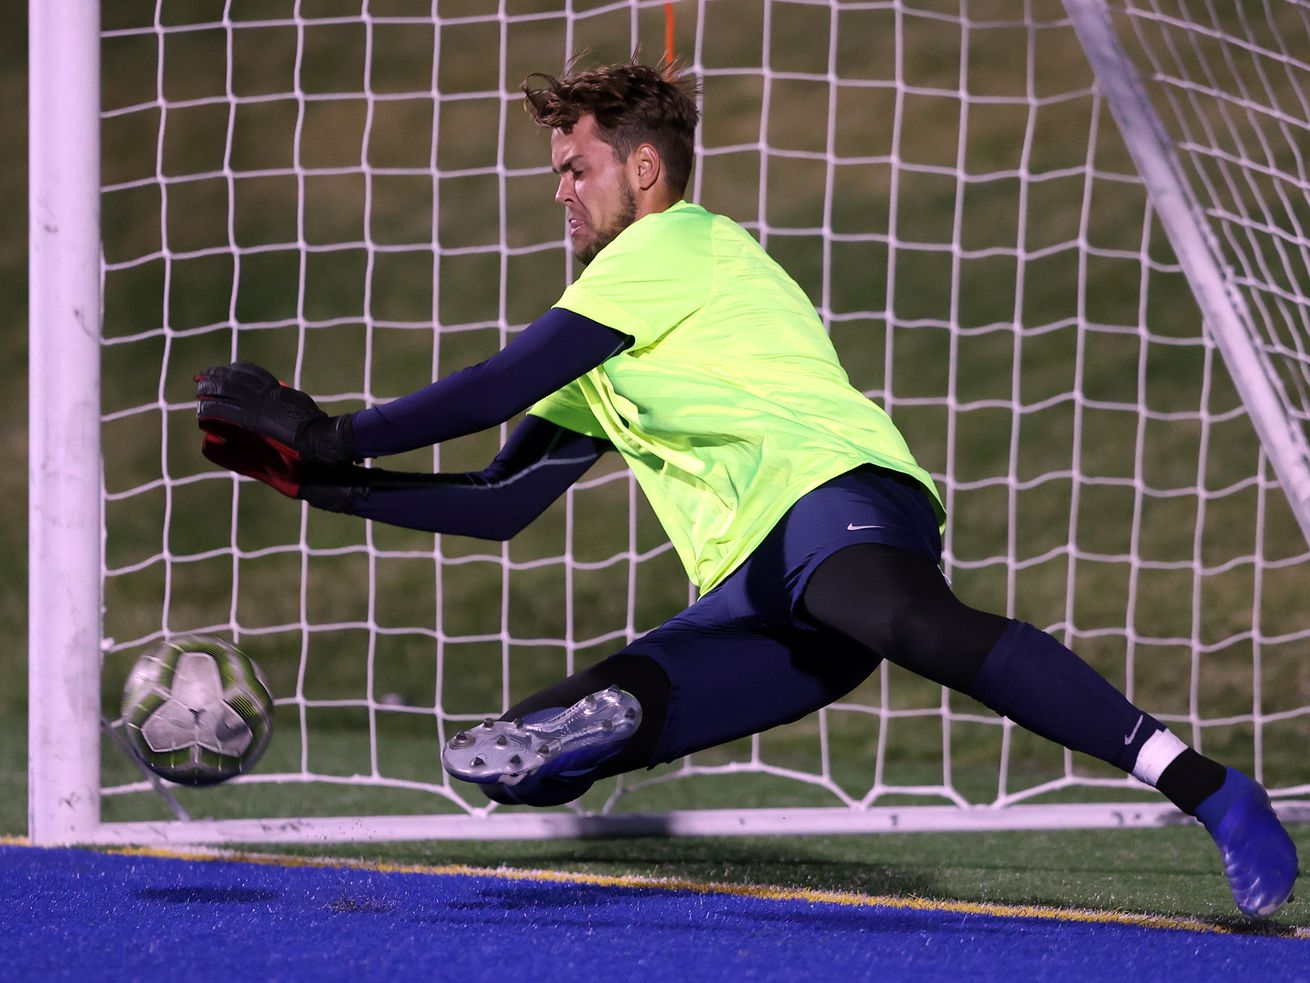 Juan Diego and Ogden play in a high school soccer game at Juan Diego on Wednesday, April 21, 2021. Juan Diego won 5-4 on penalty kicks.